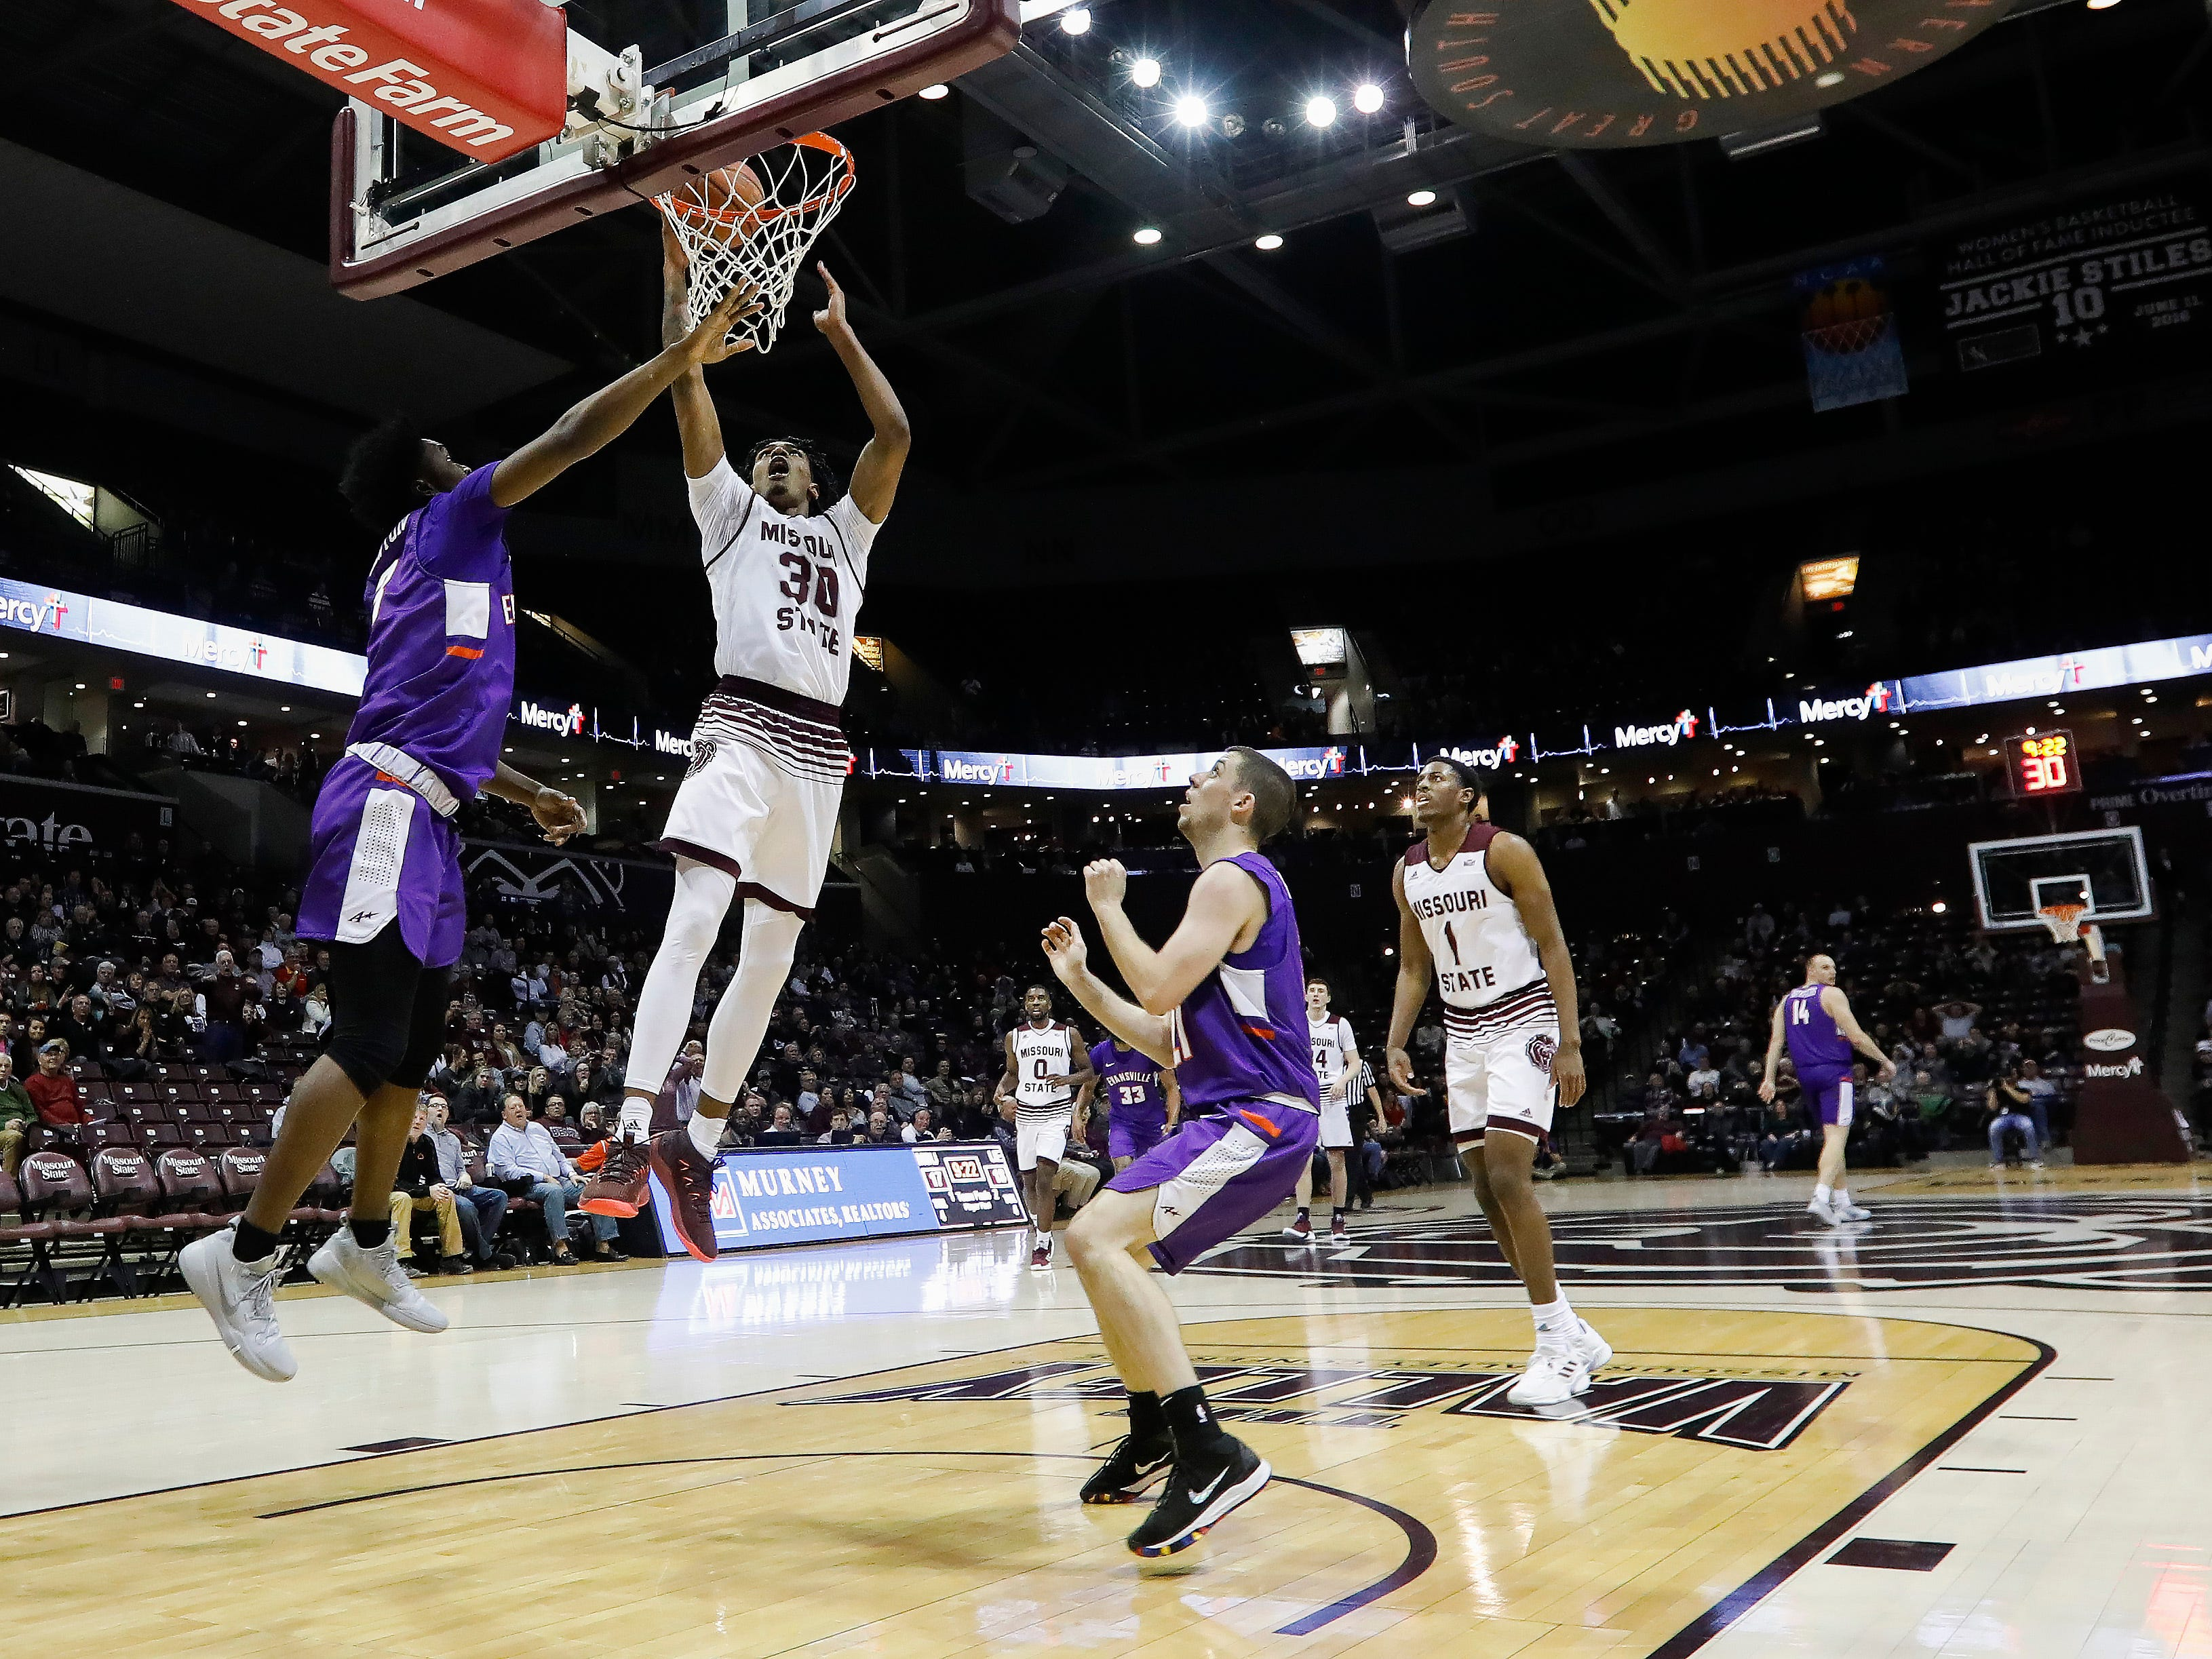 Tulio Da Silva (30), of Missouri State, dunks the ball during the Bears game against the Evansville Purple Aces at JQH Arena on Wednesday, Jan. 16, 2019.